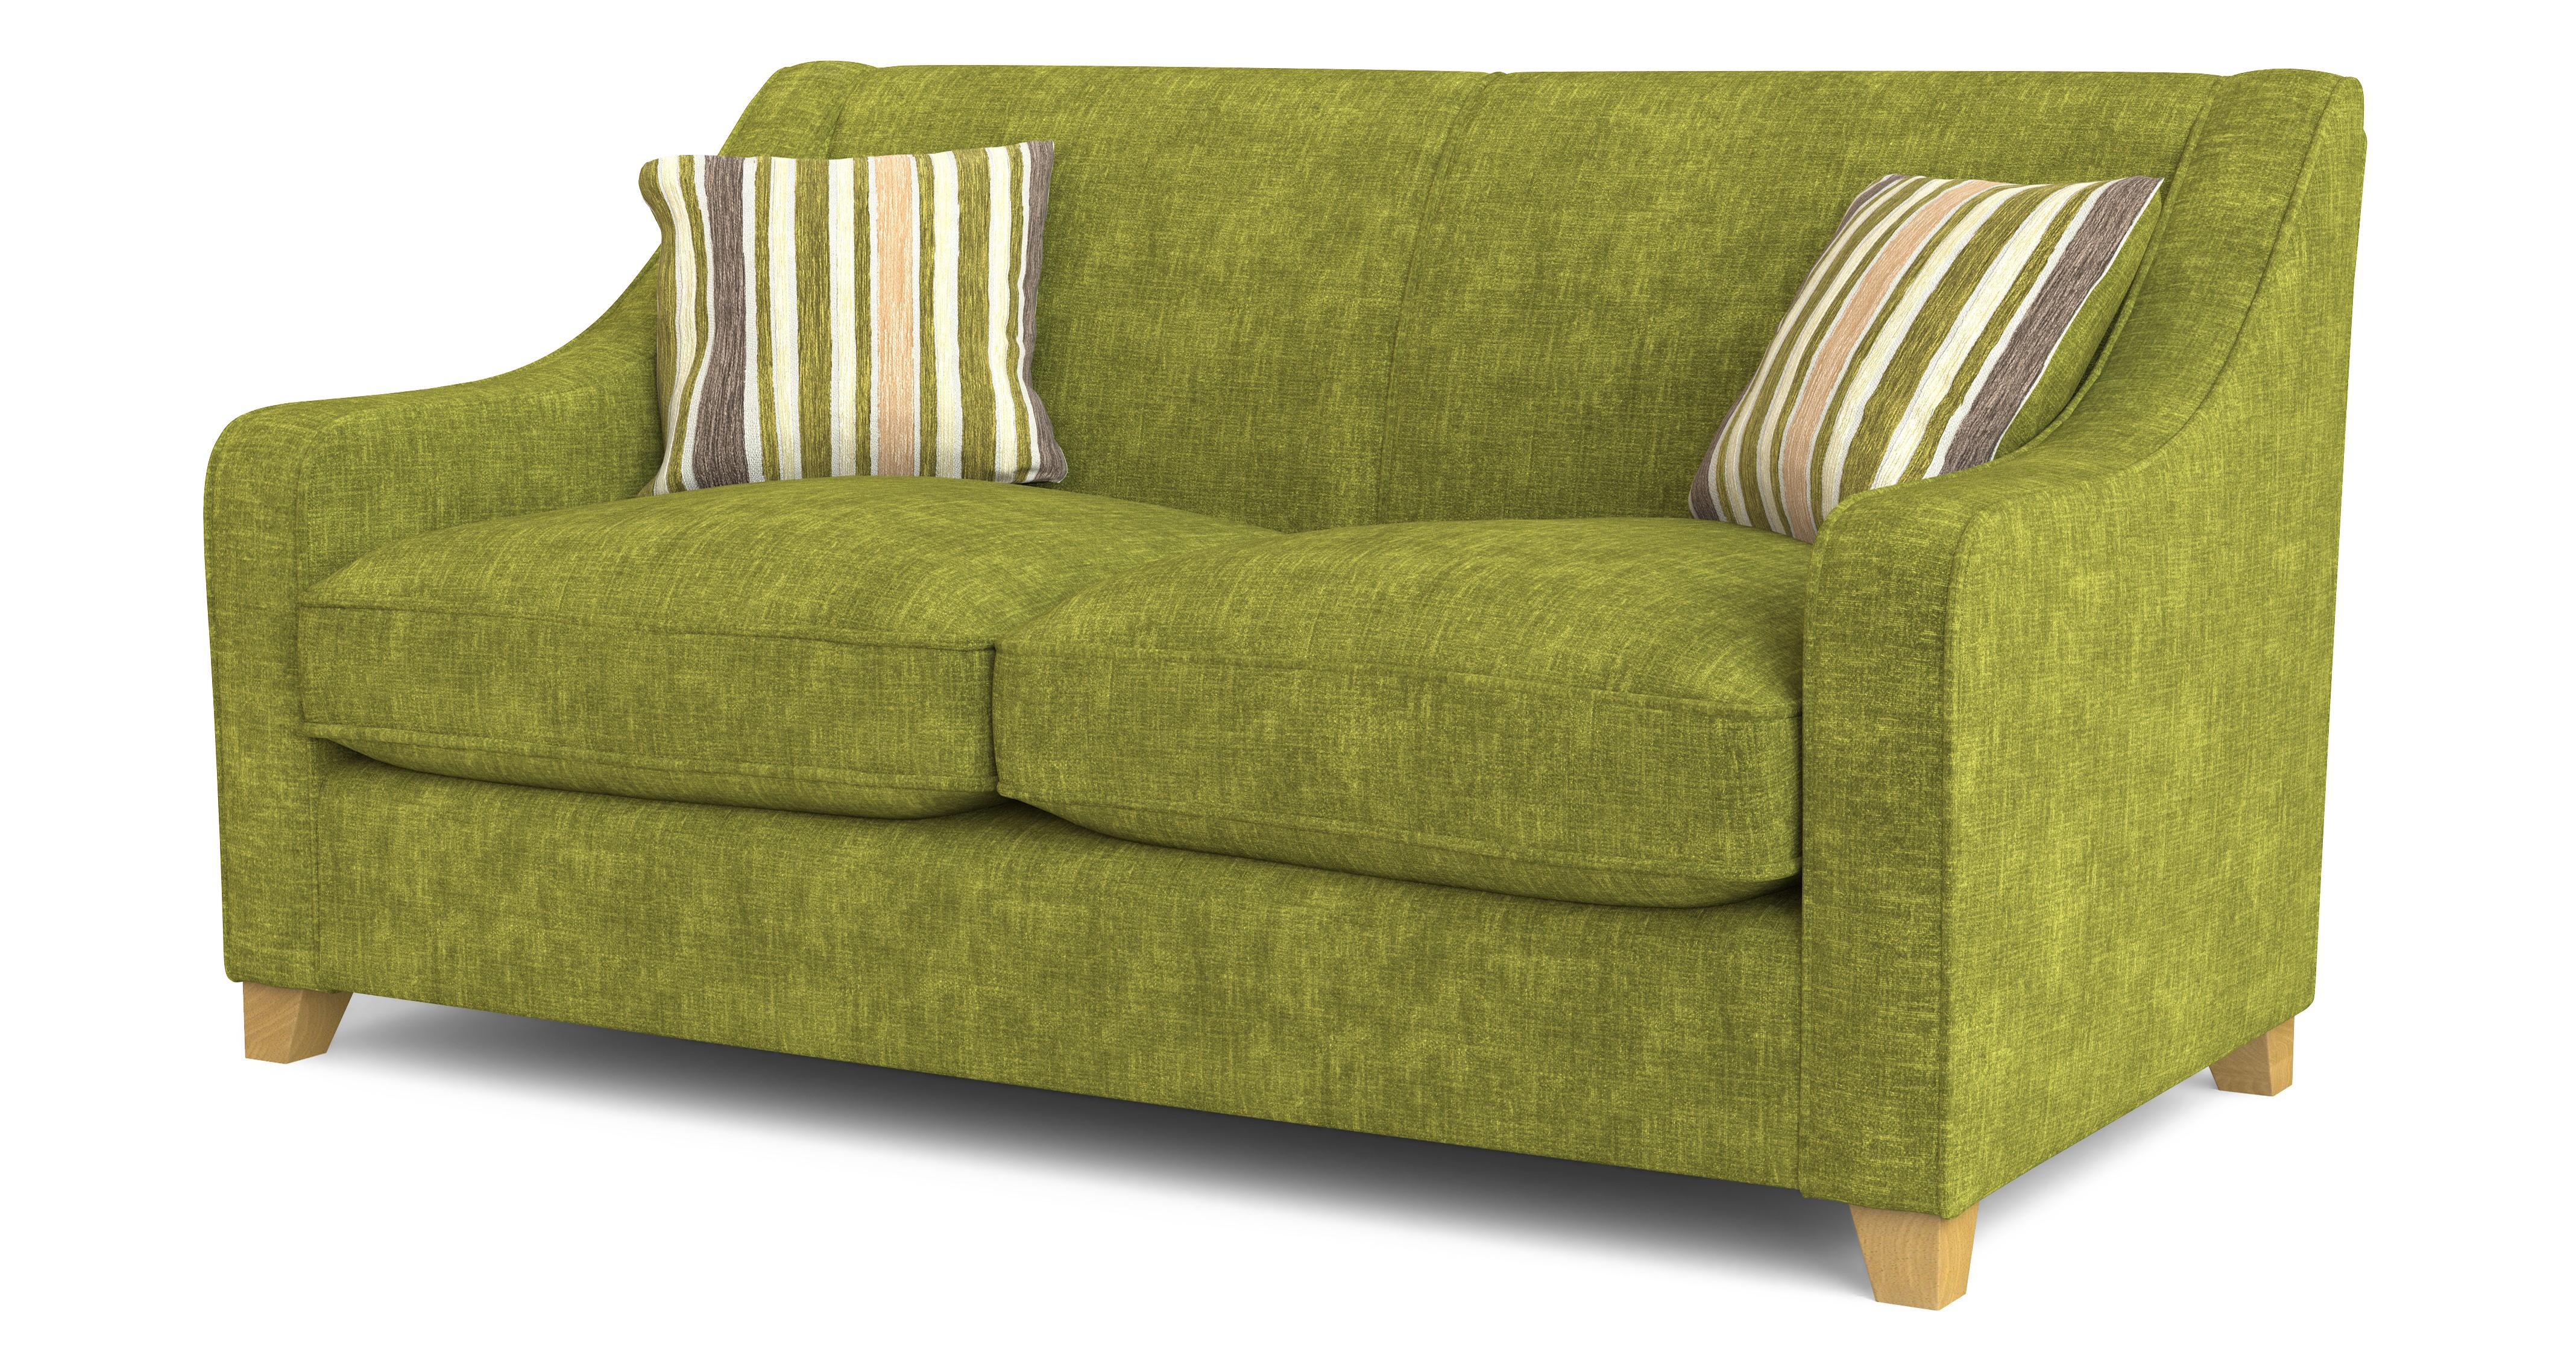 bright green sofa bed cheap in abu dhabi 2 seater dfs sofas uk related keywords